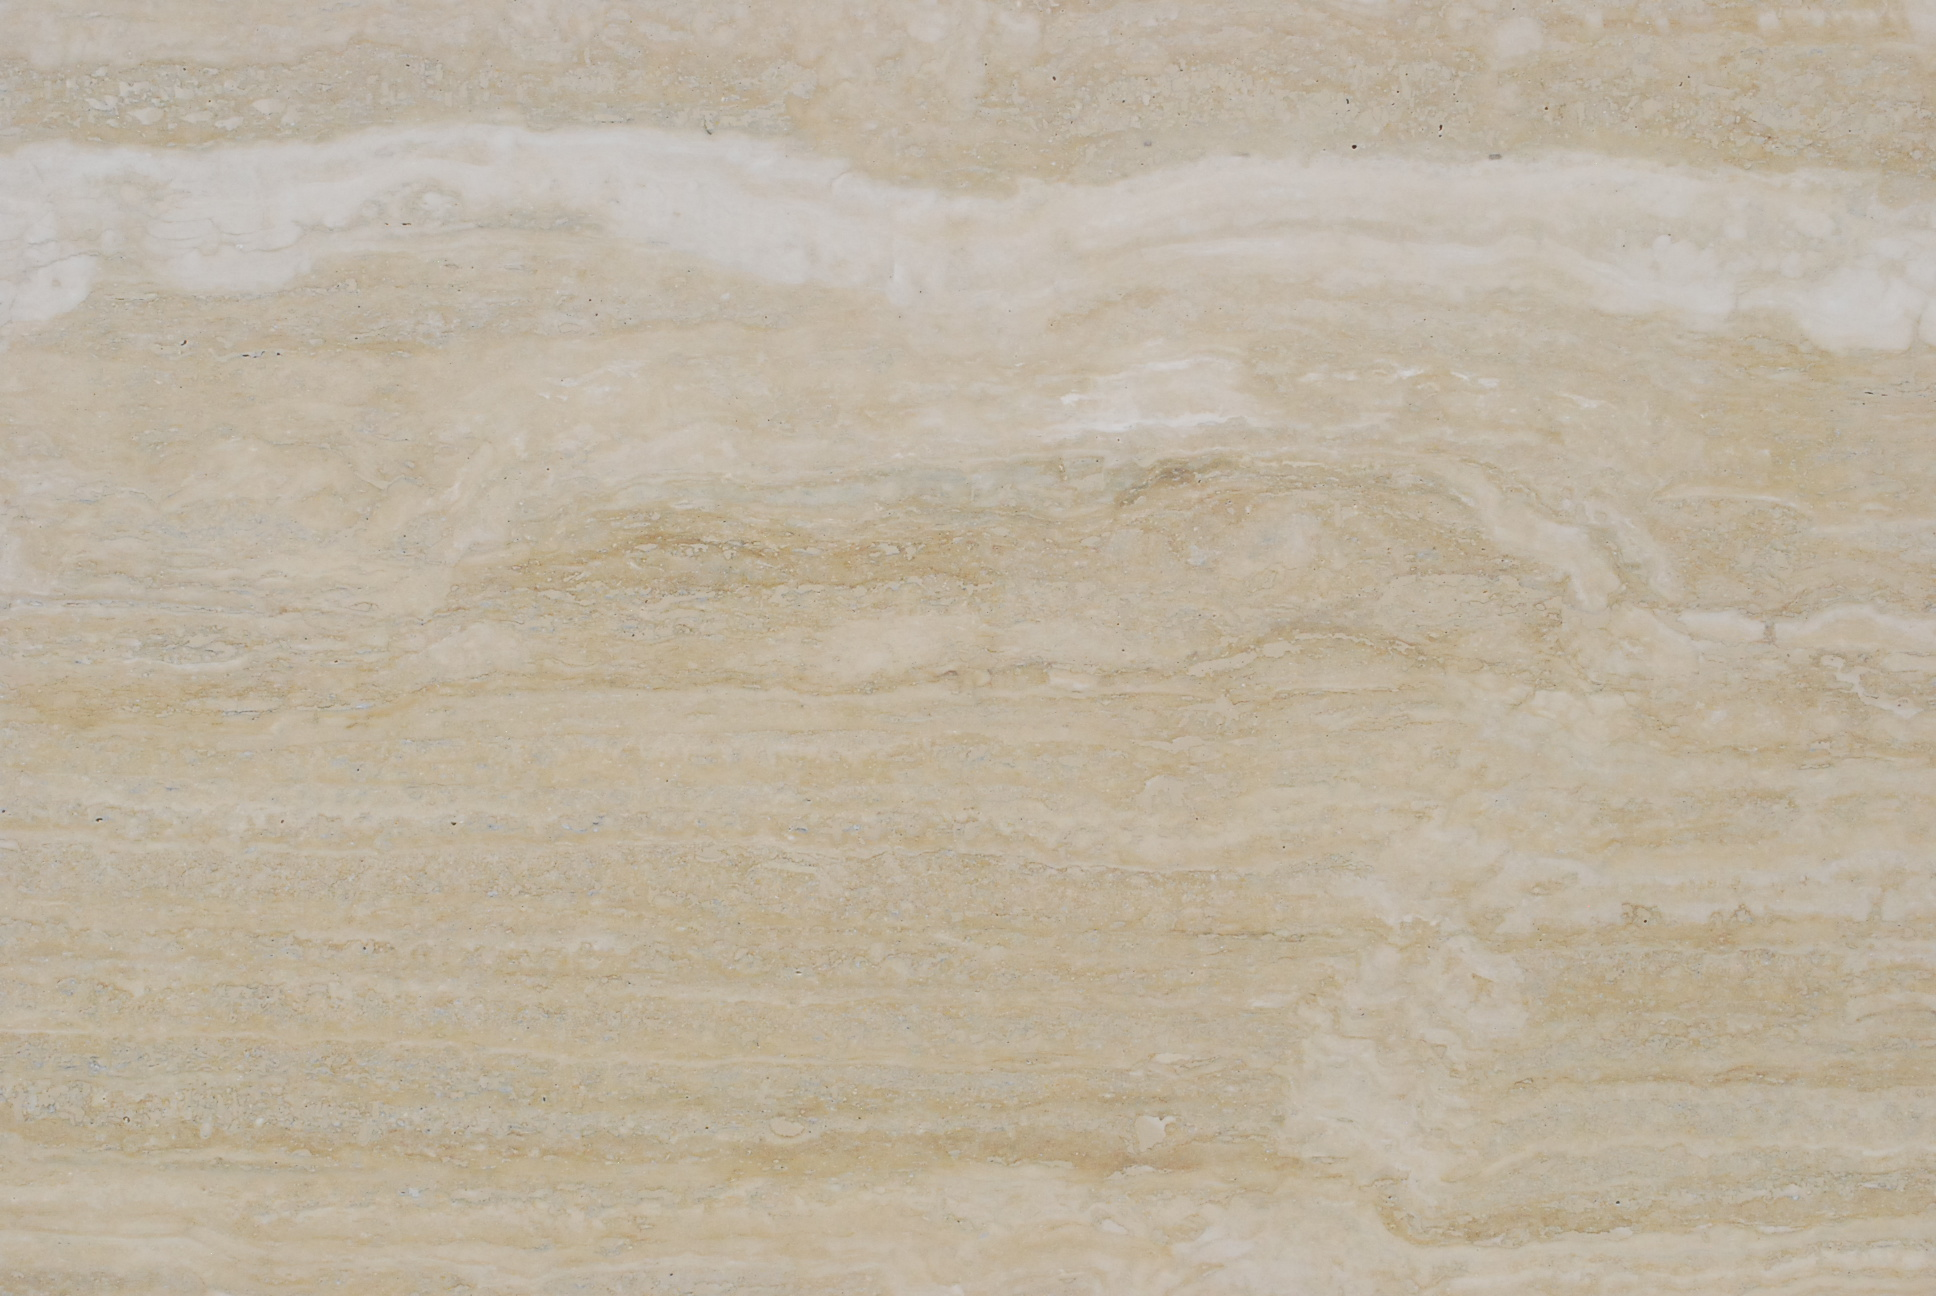 elgin gloss bct travertine beige pin tile marble effect flooring floor by